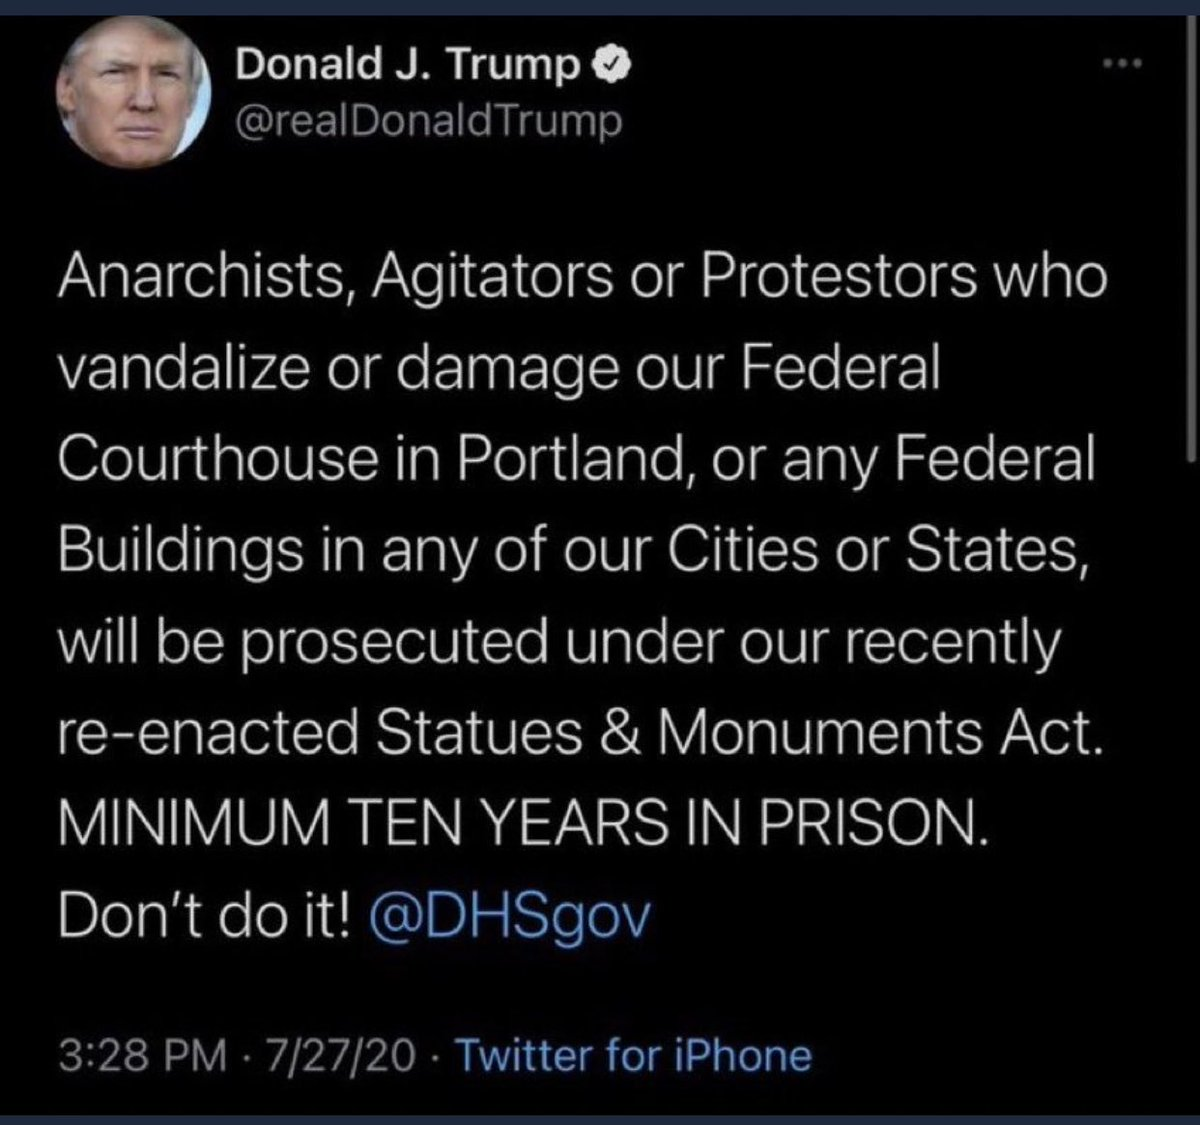 @realDonaldTrump Don't forget to PROSECUTE!!!!  You have photos and videos of the people at the Capital Building!!